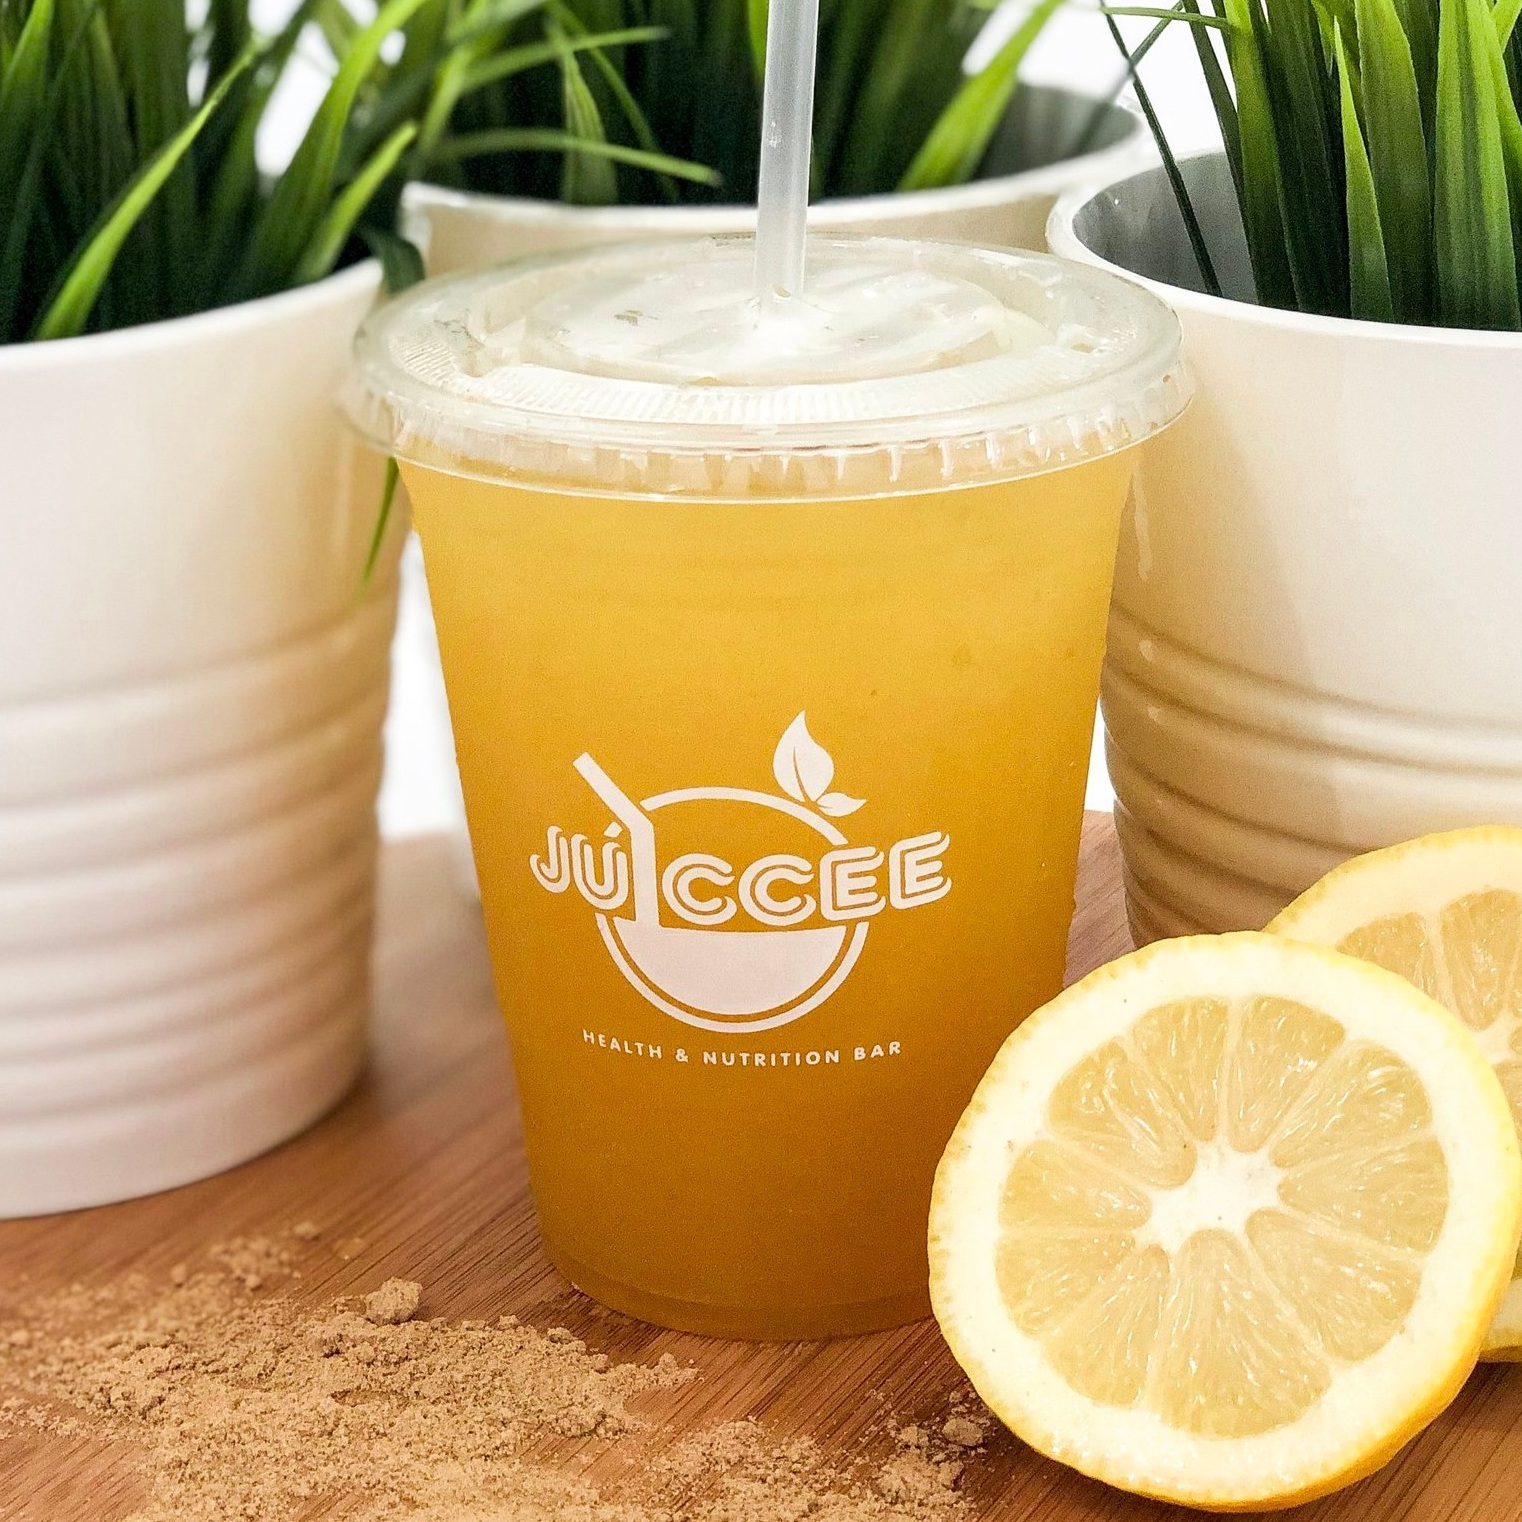 - HEART OF GOLDA citrus blend of juices with a dash of ginger to spice up your day.